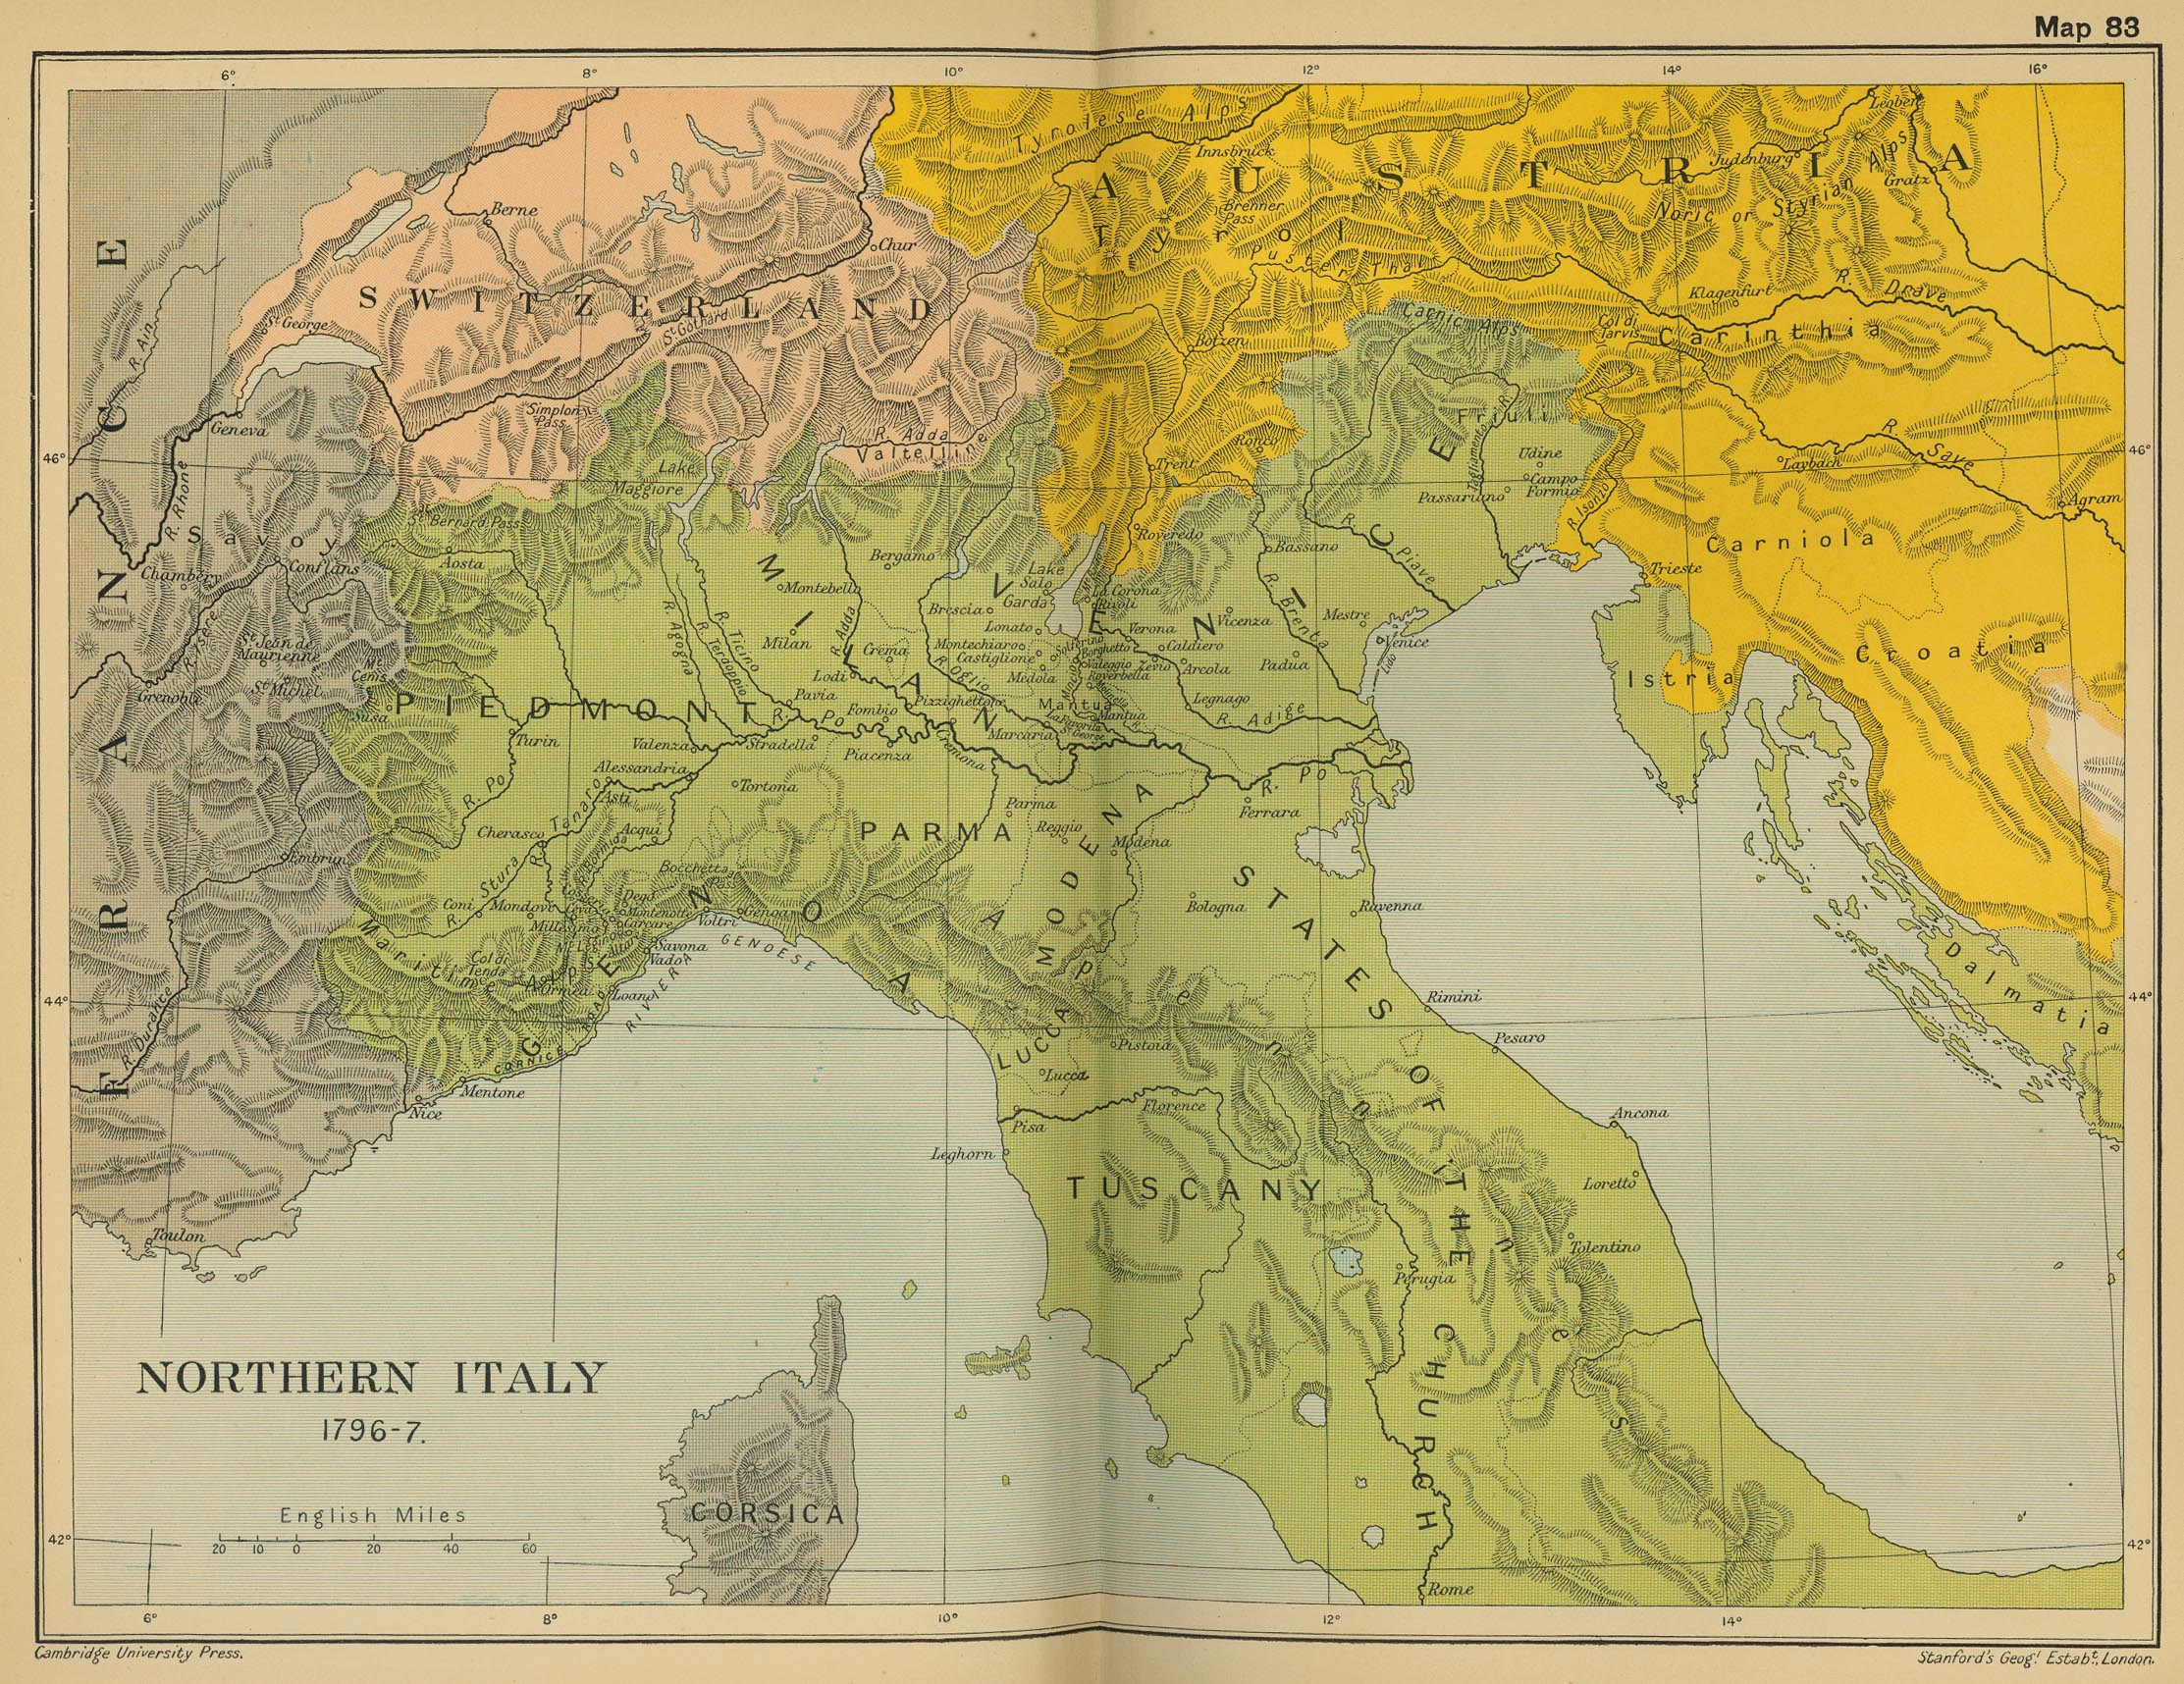 Map of Northern Italy 1796-1797